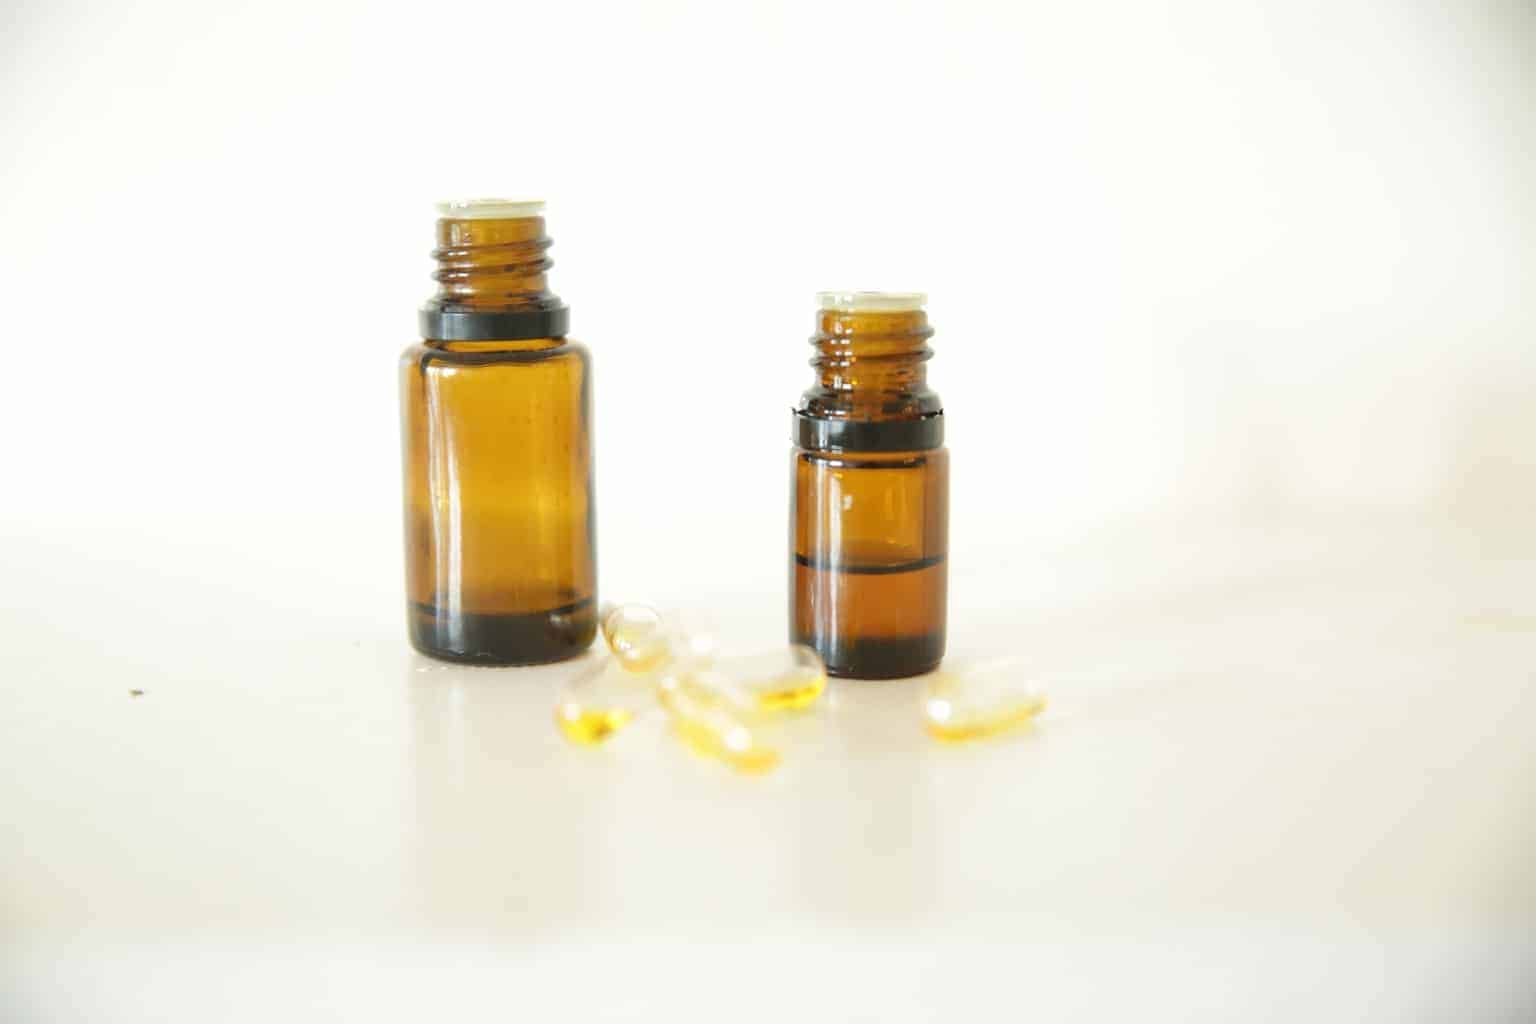 2 amber essential oil bottles with gel capsules on table